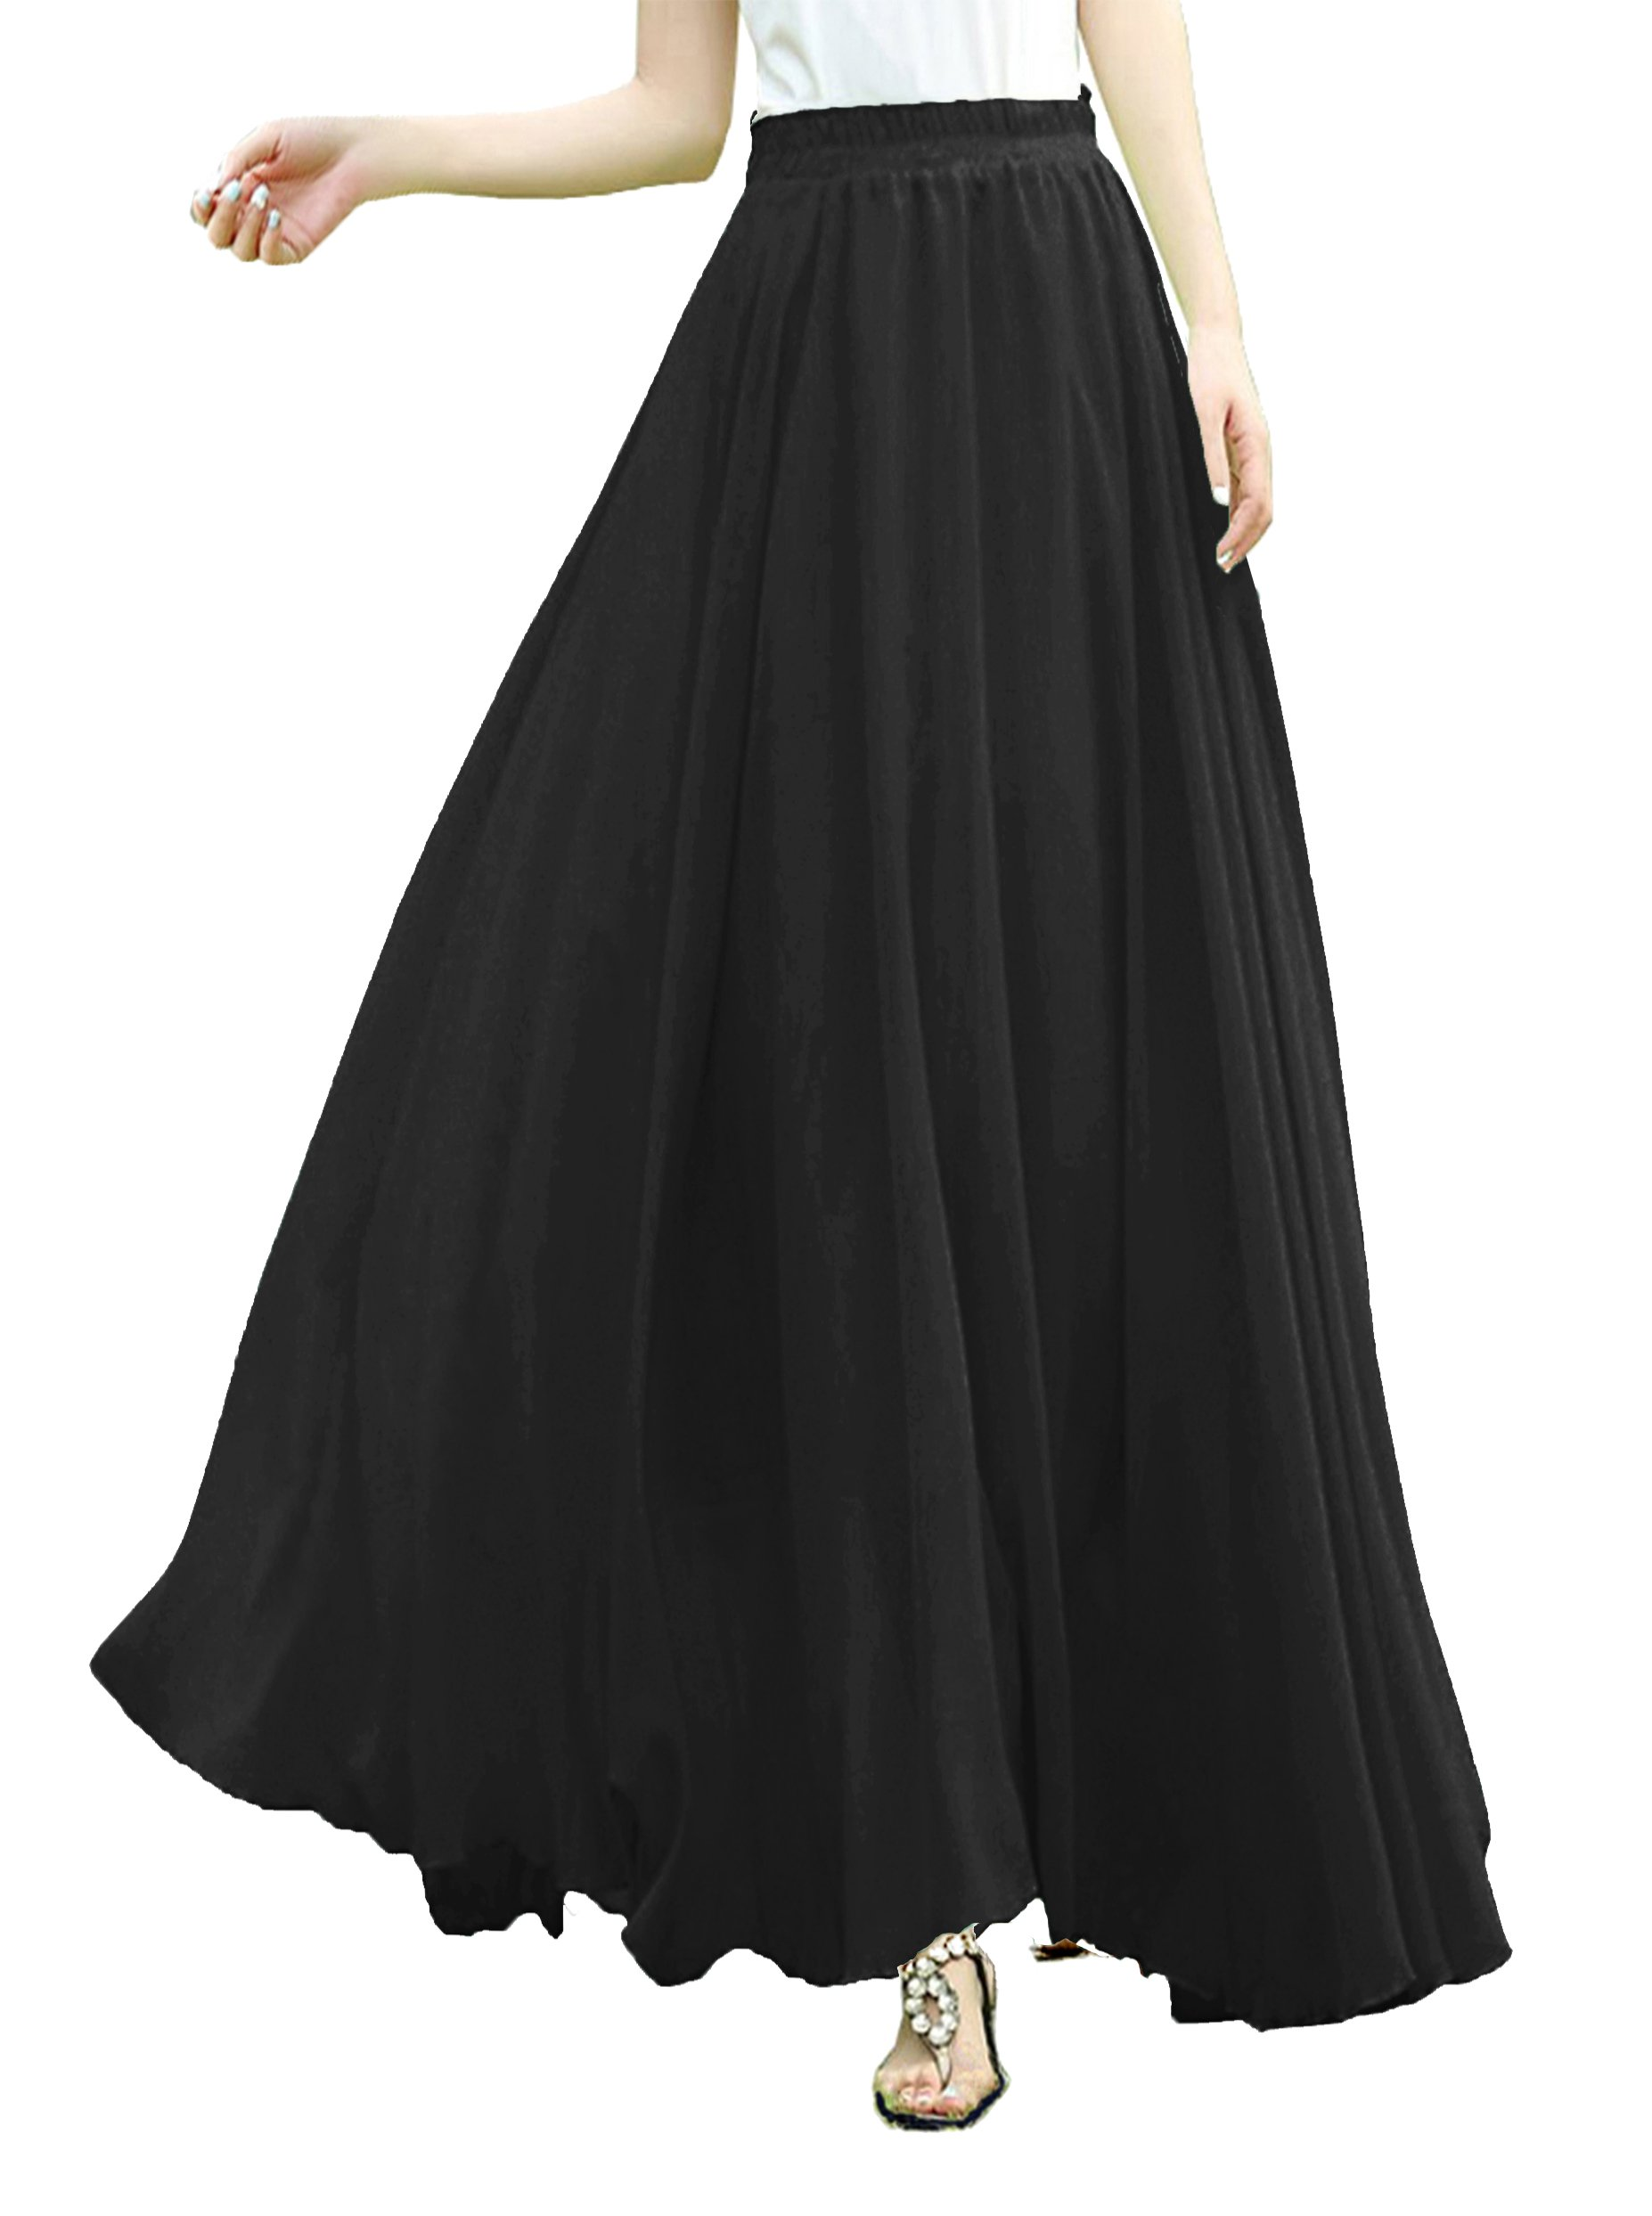 v28 V28Women Full/Ankle Length Elastic Pleated Retro Maxi Chiffon Long Skirt (S, Black)